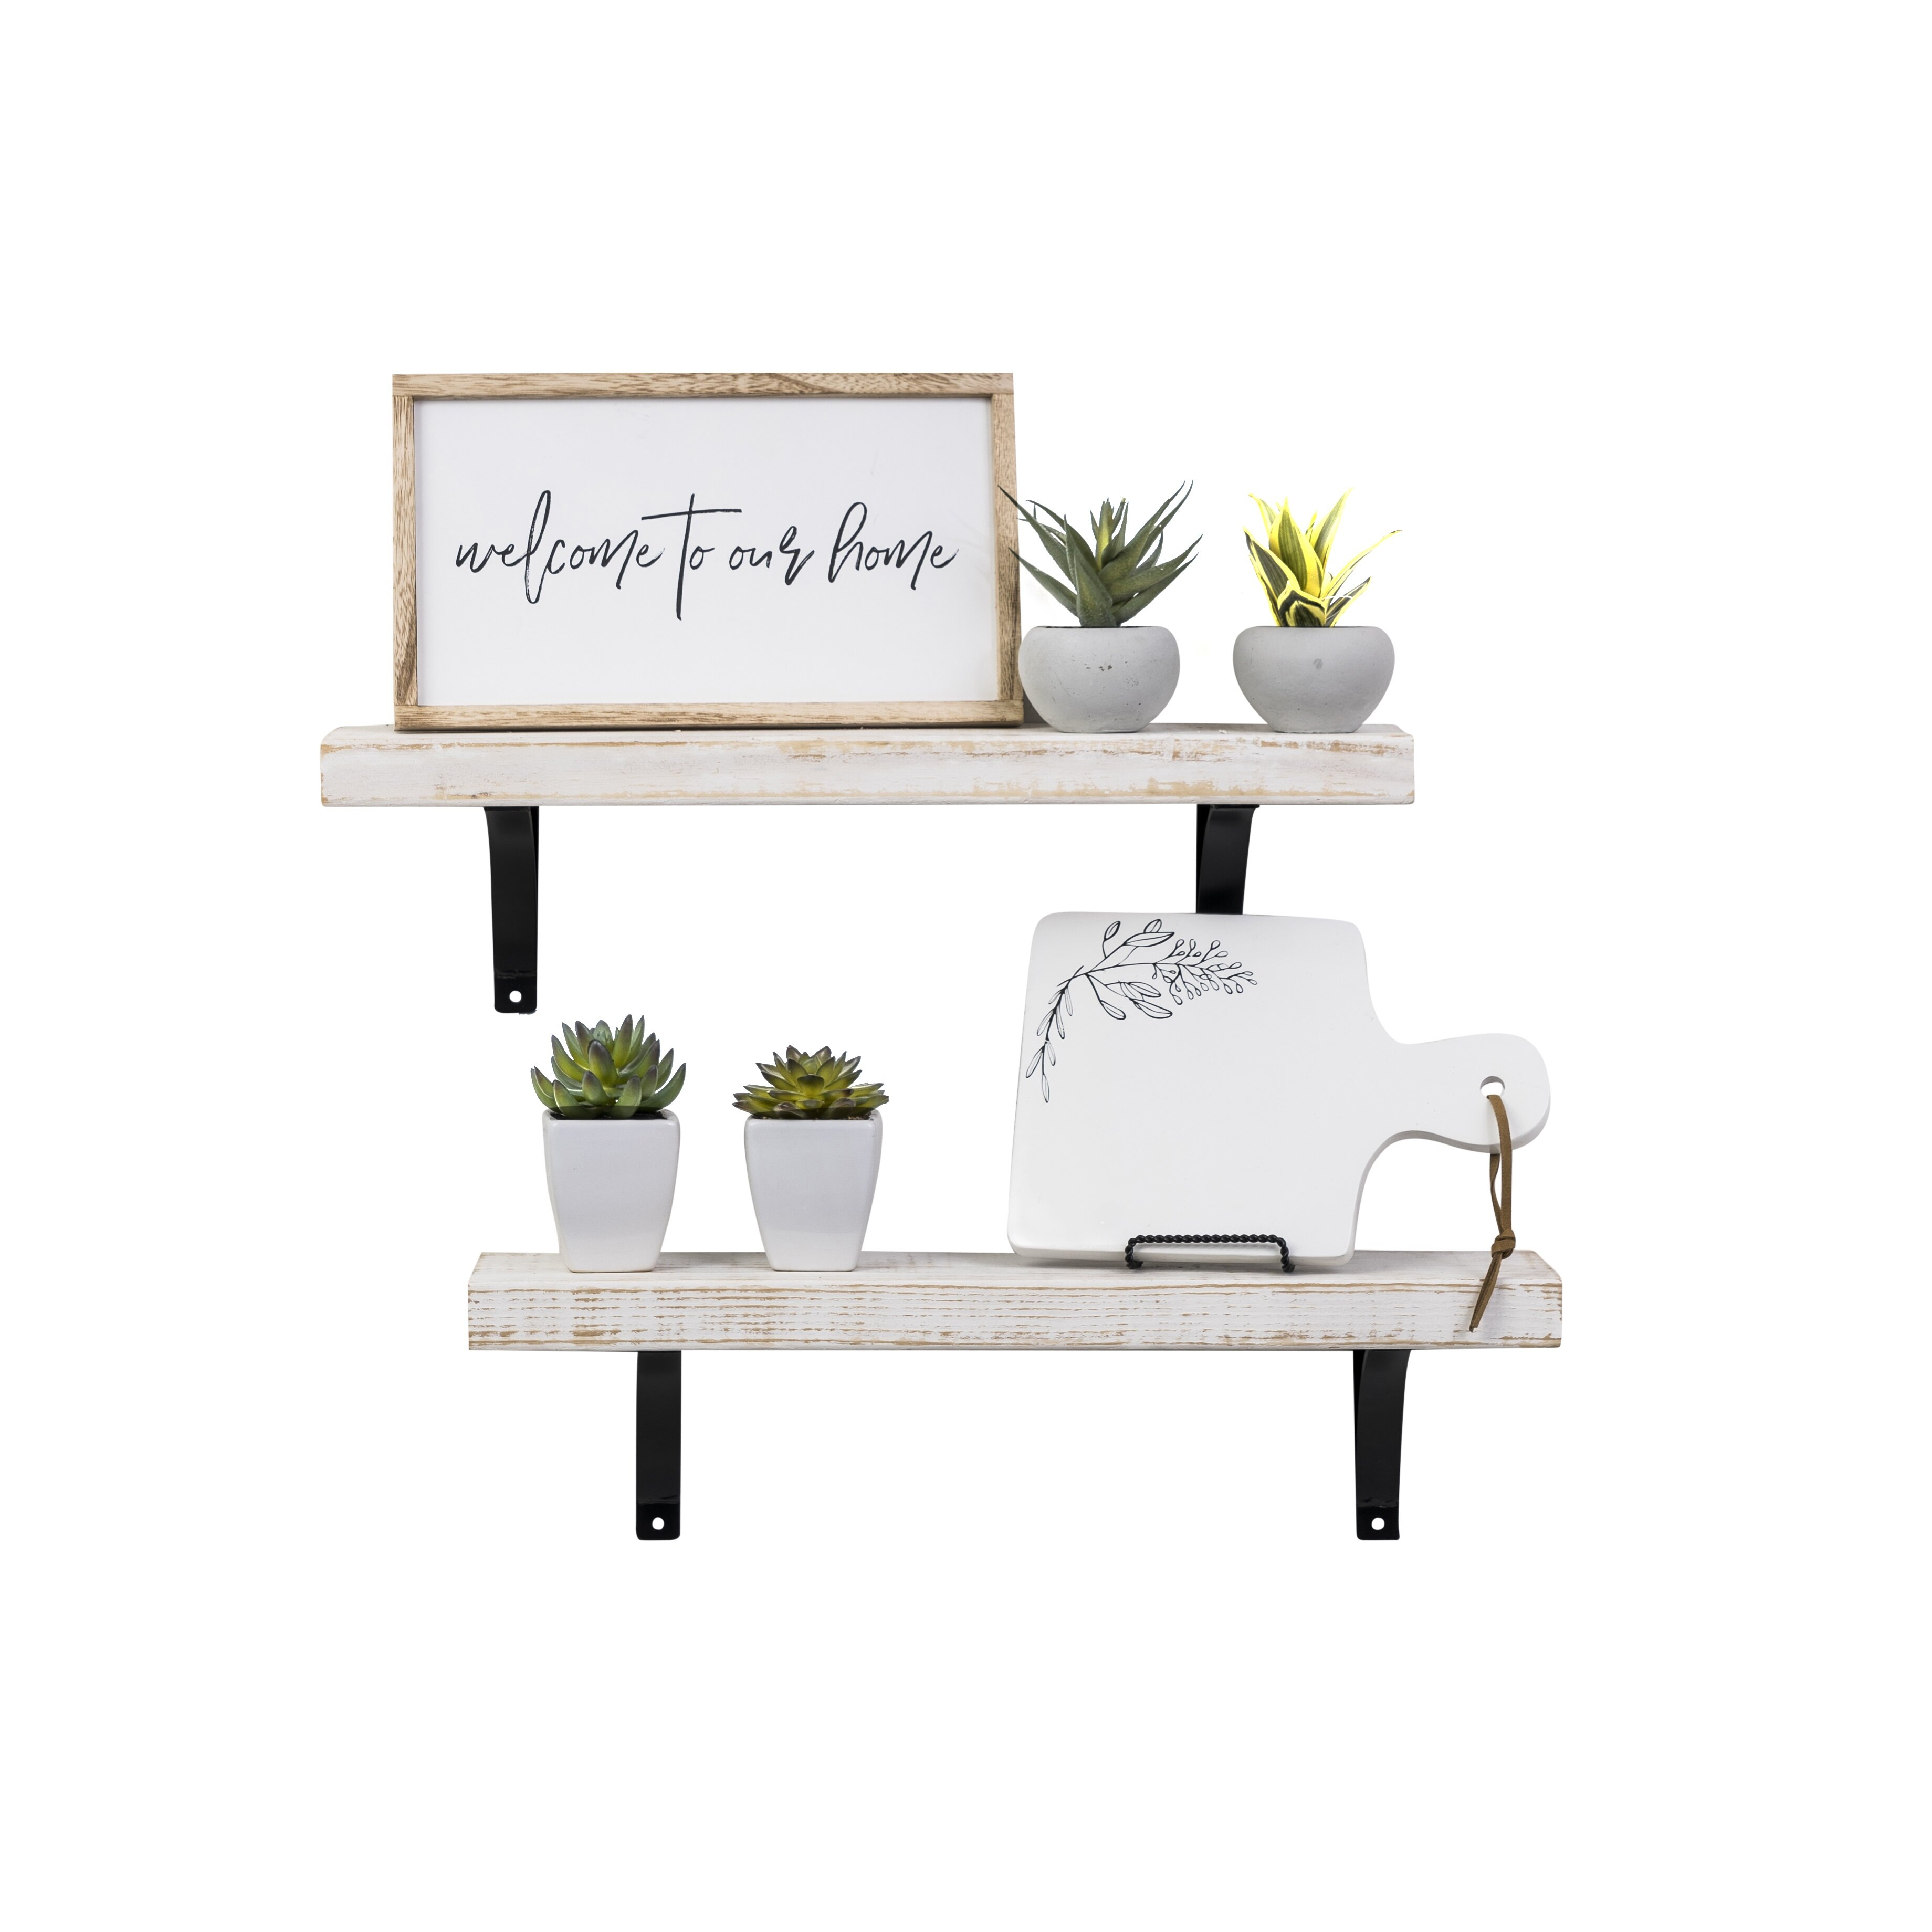 Laurel Foundry Modern Farmhouse Pinecrest Industrial Grace Simple inside Current Farm Metal Wall Rack And 3 Tin Pot With Hanger Wall Decor